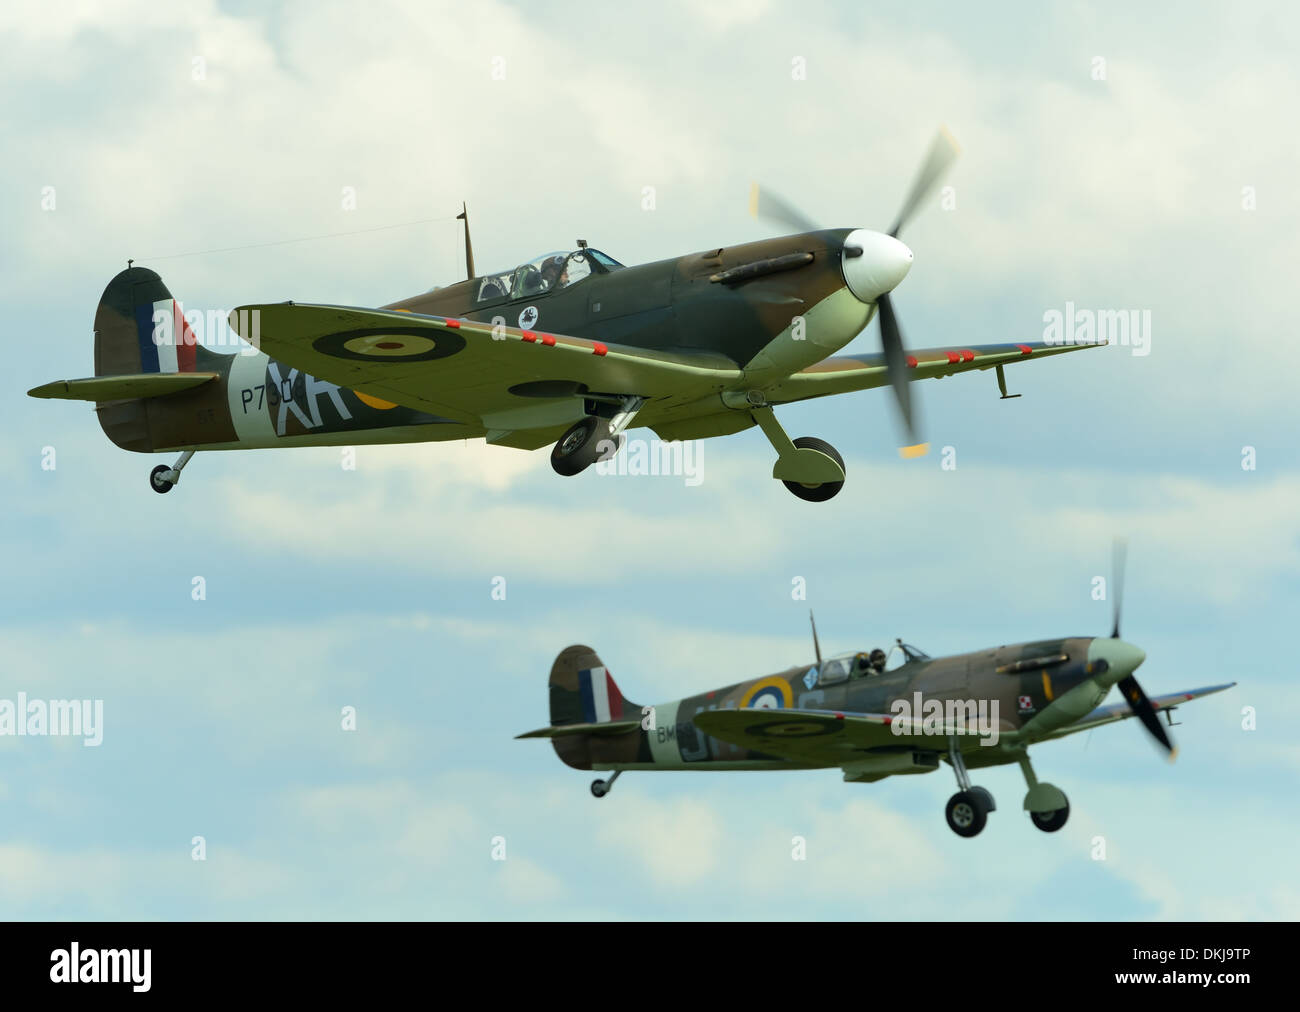 Pair of Supermarine spitfires taking off at Duxford air show UK.September 2012 - Stock Image